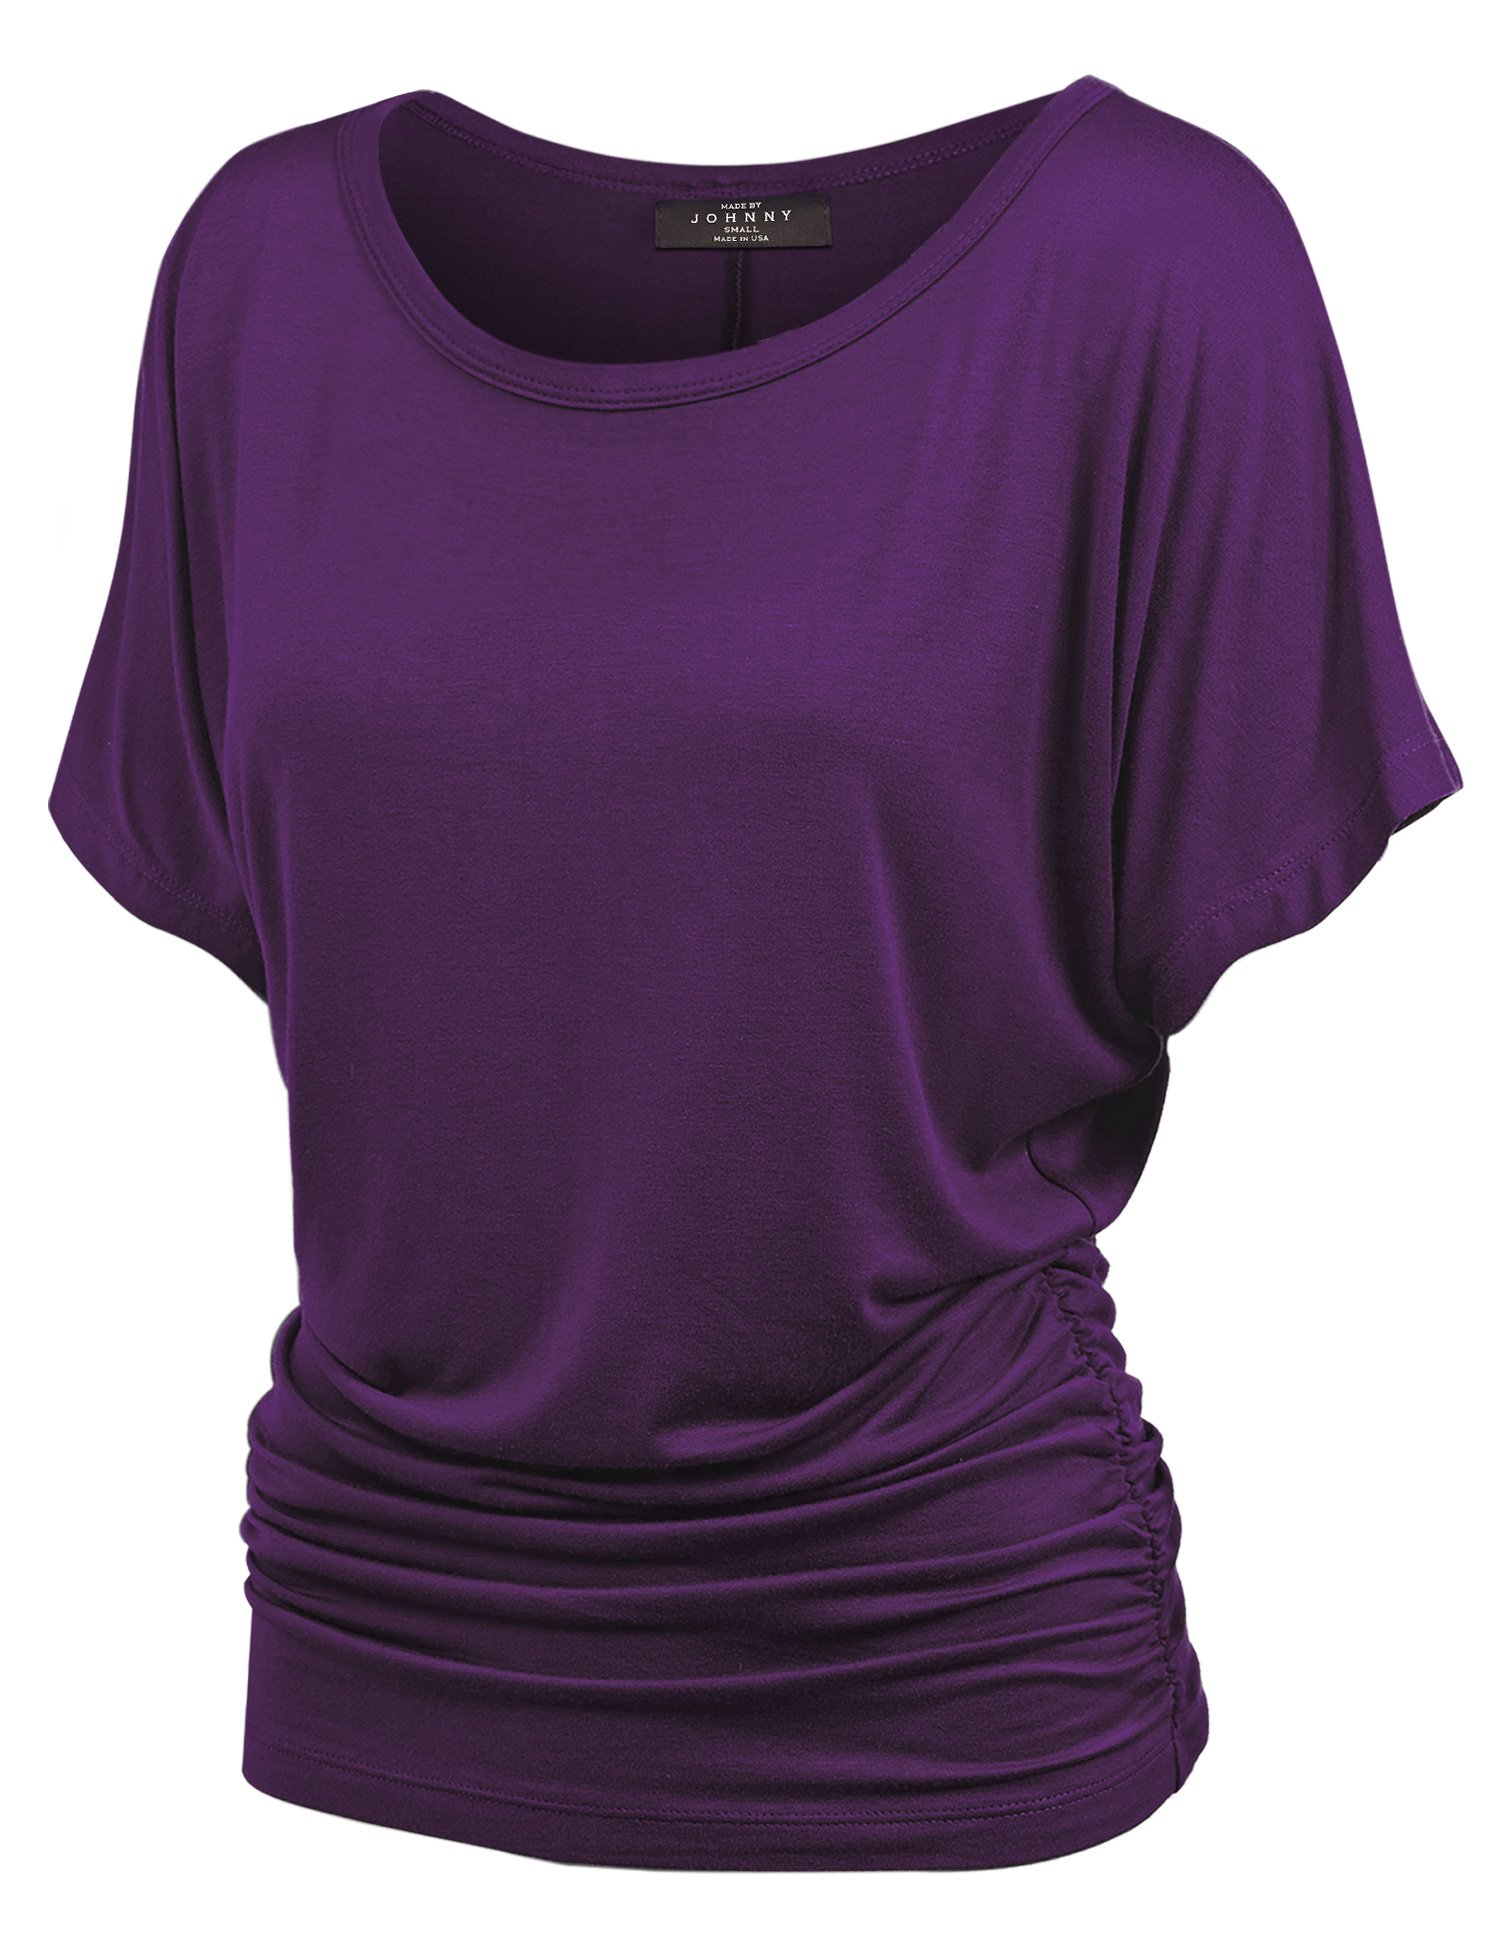 Made By Johnny WT817 Womens Dolman Drape Top with Side Shirring L Dark_Purple